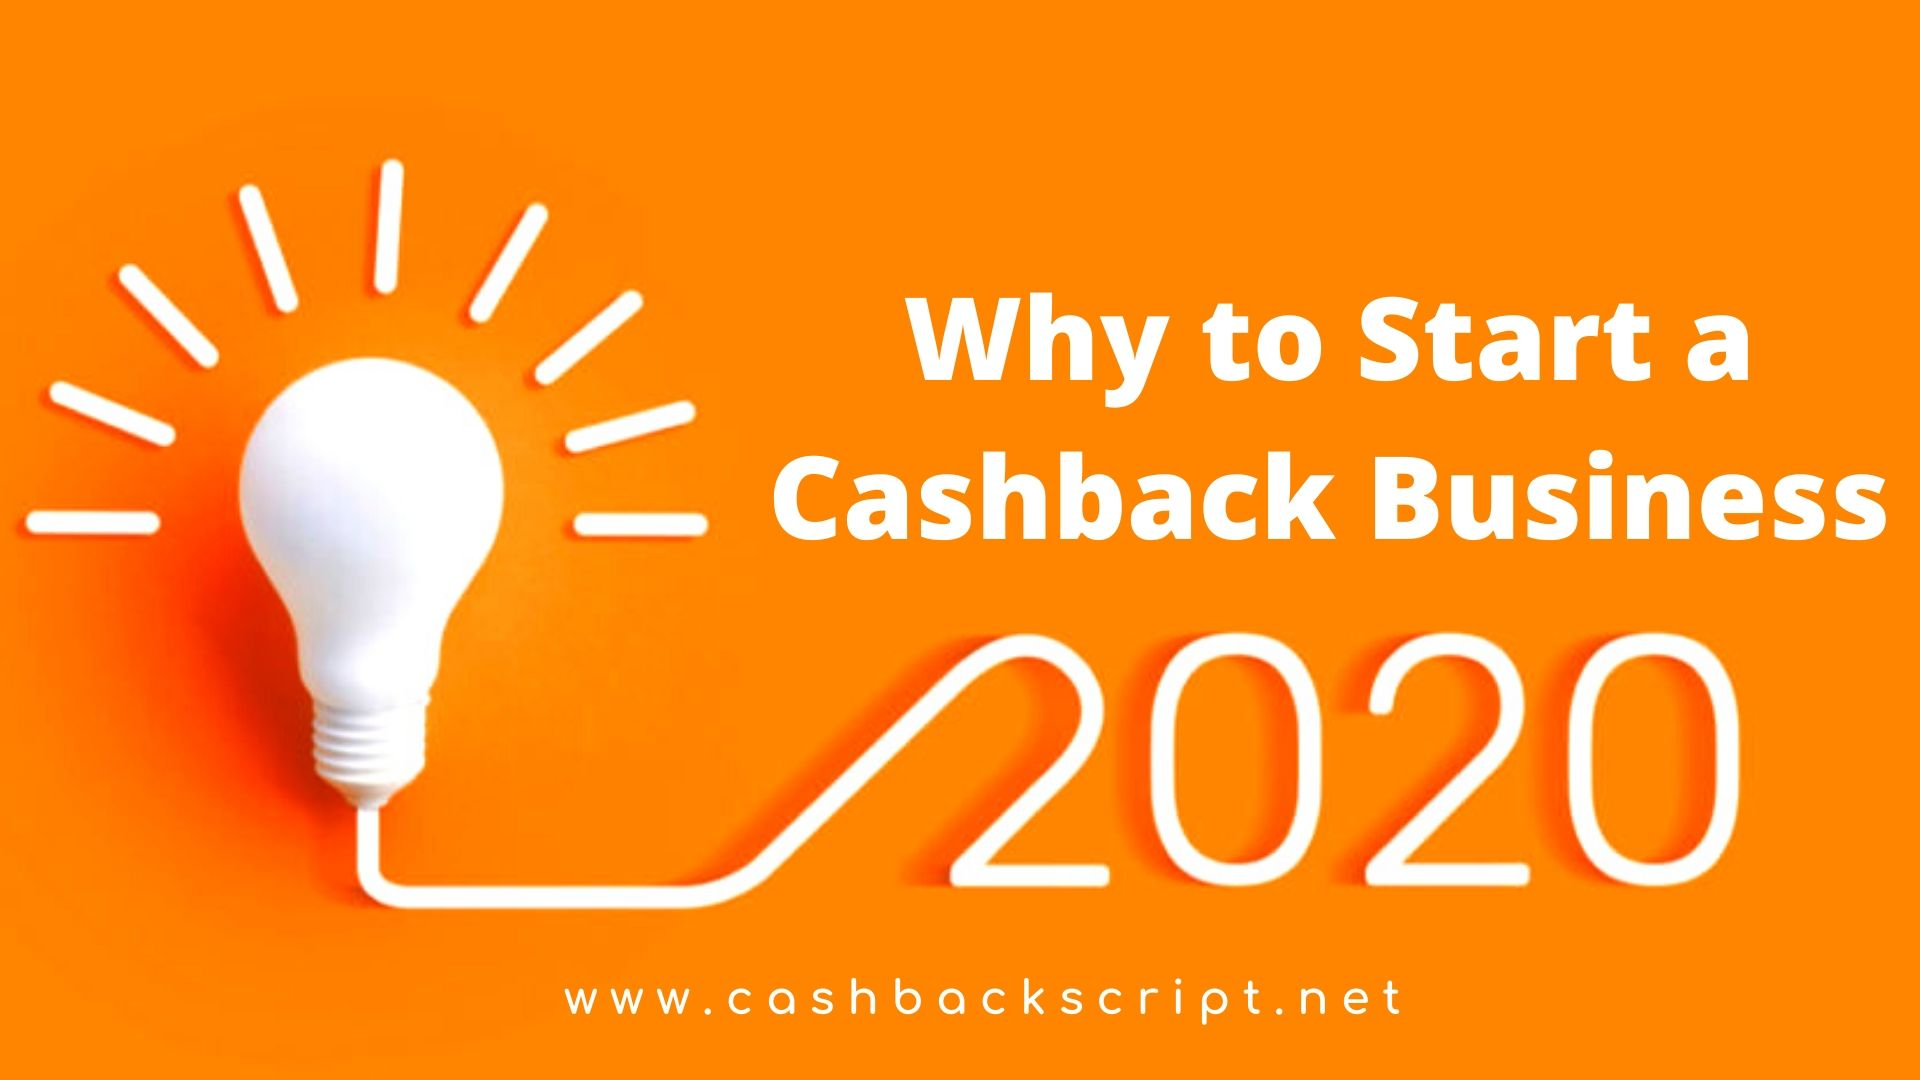 Starting a cashback business - Will it be a best business idea in 2020 ?